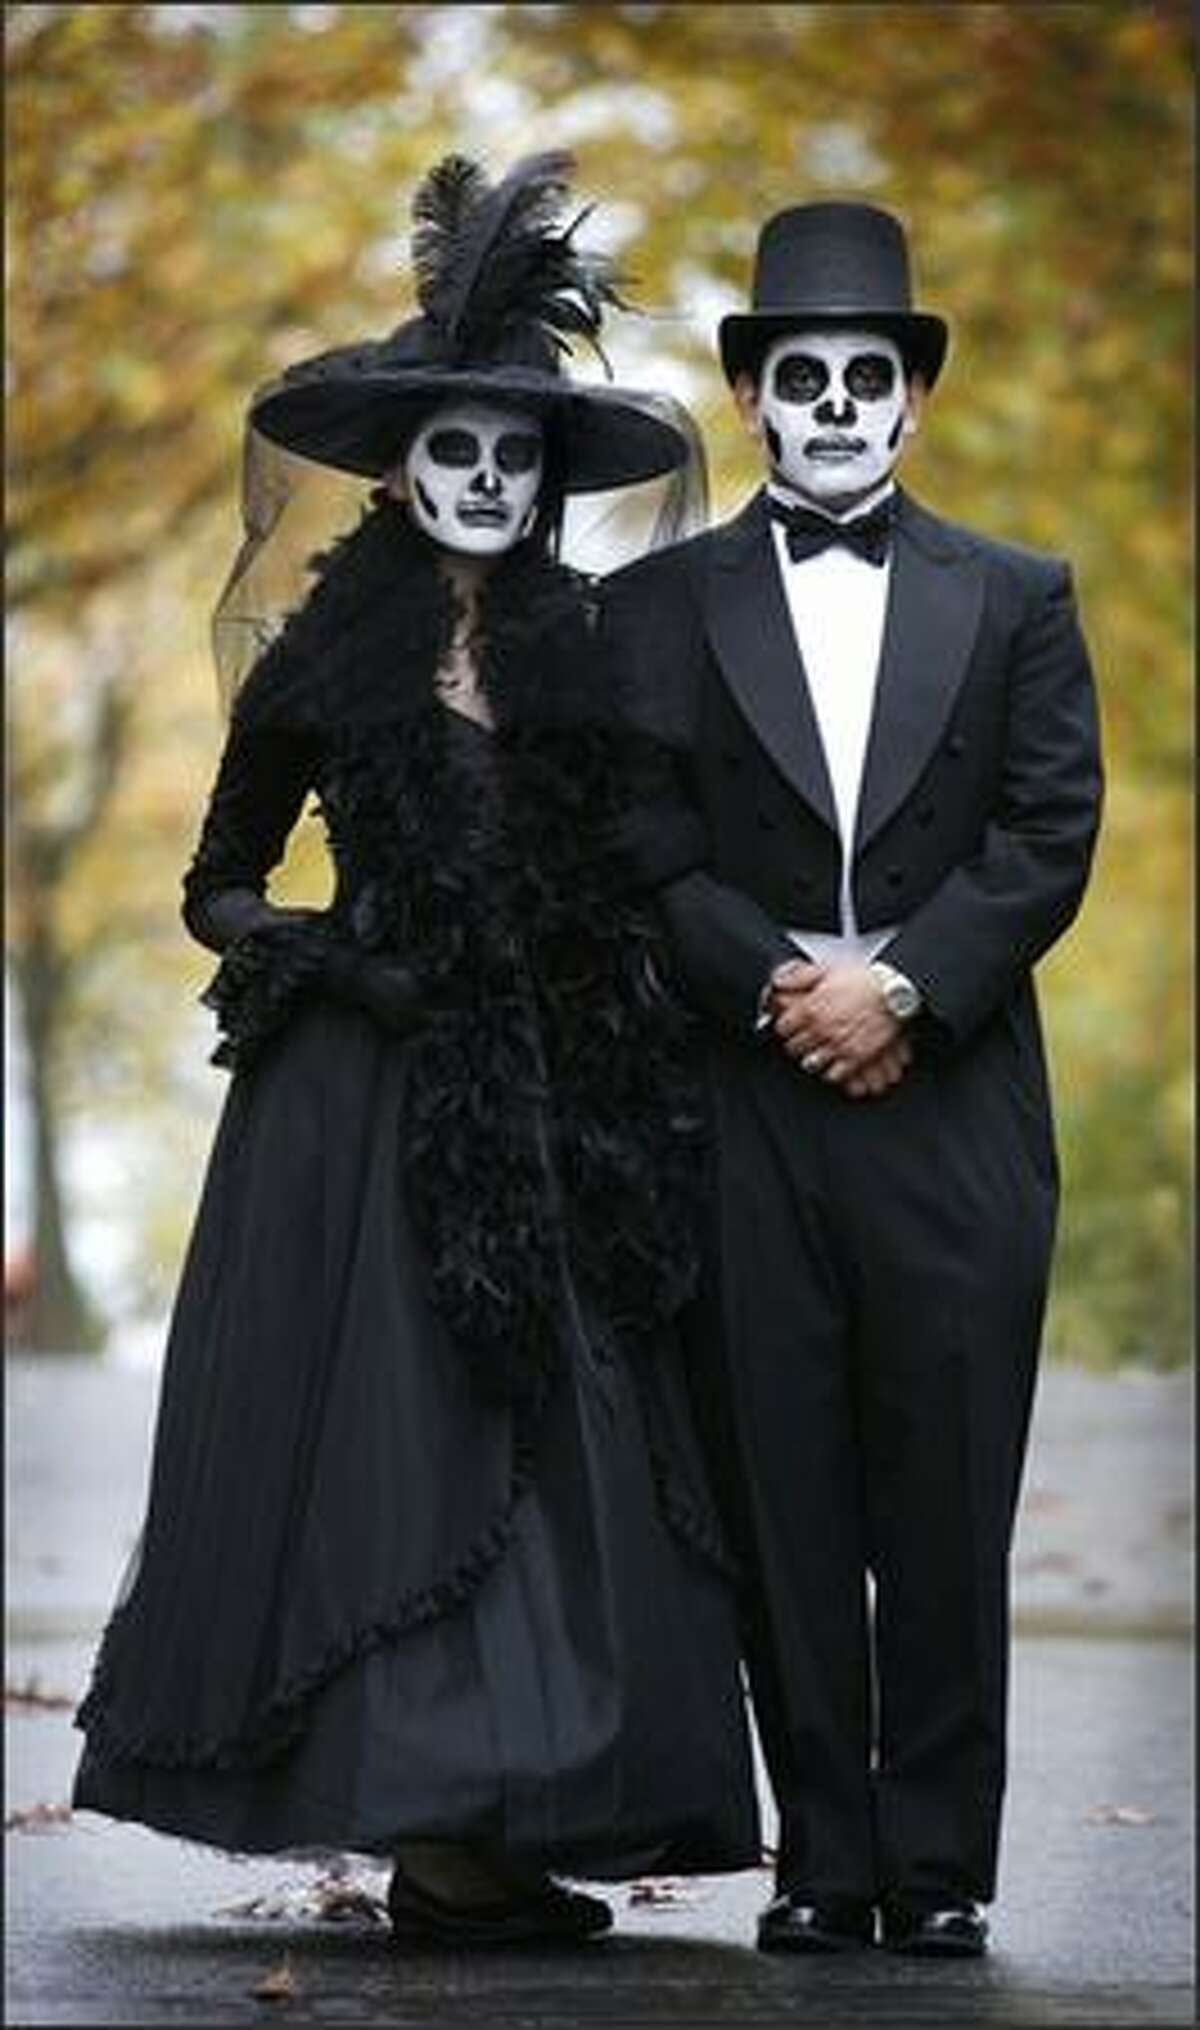 Zulley Diaz and Joel Mercado attend Dia de Muertos celebrations at Seattle Center properly attired. Brown: These real-life young sweethearts had a natural elegance about them, strolling about hand-in-hand dressed and made up as dead lovers from early in the previous century.